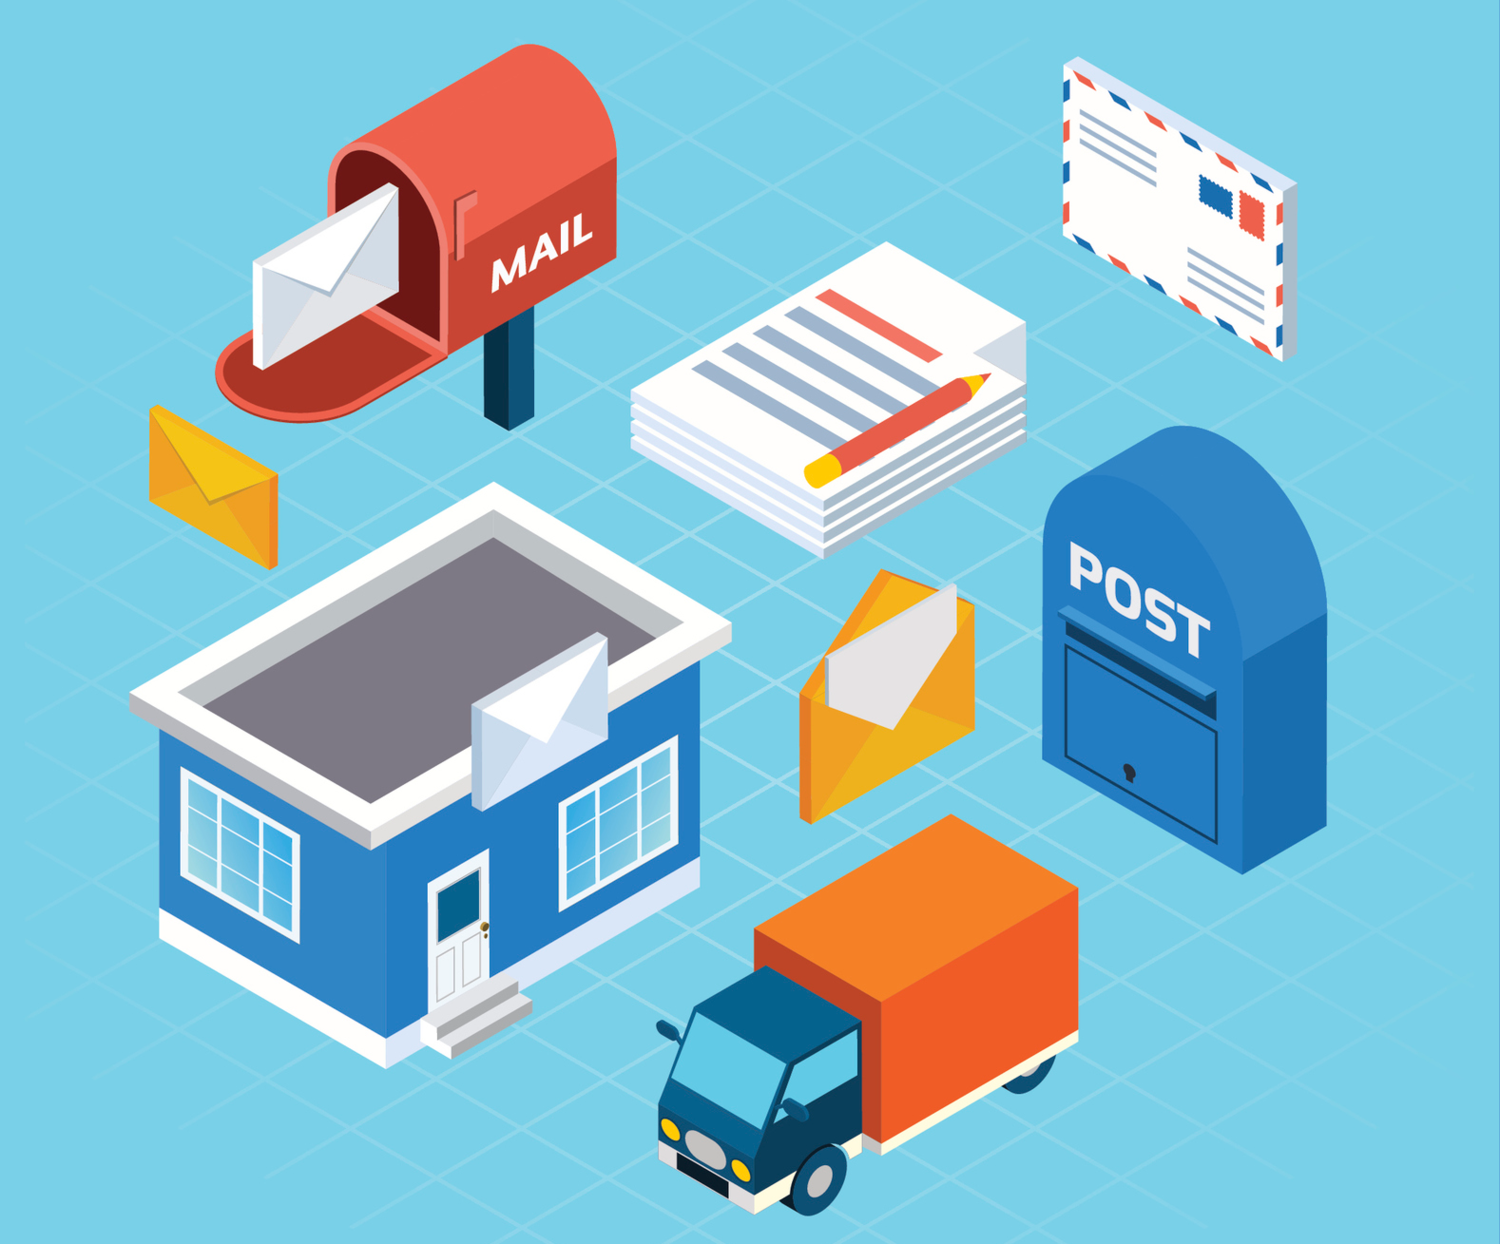 How to Choose a Mail Forward Service for Your Business